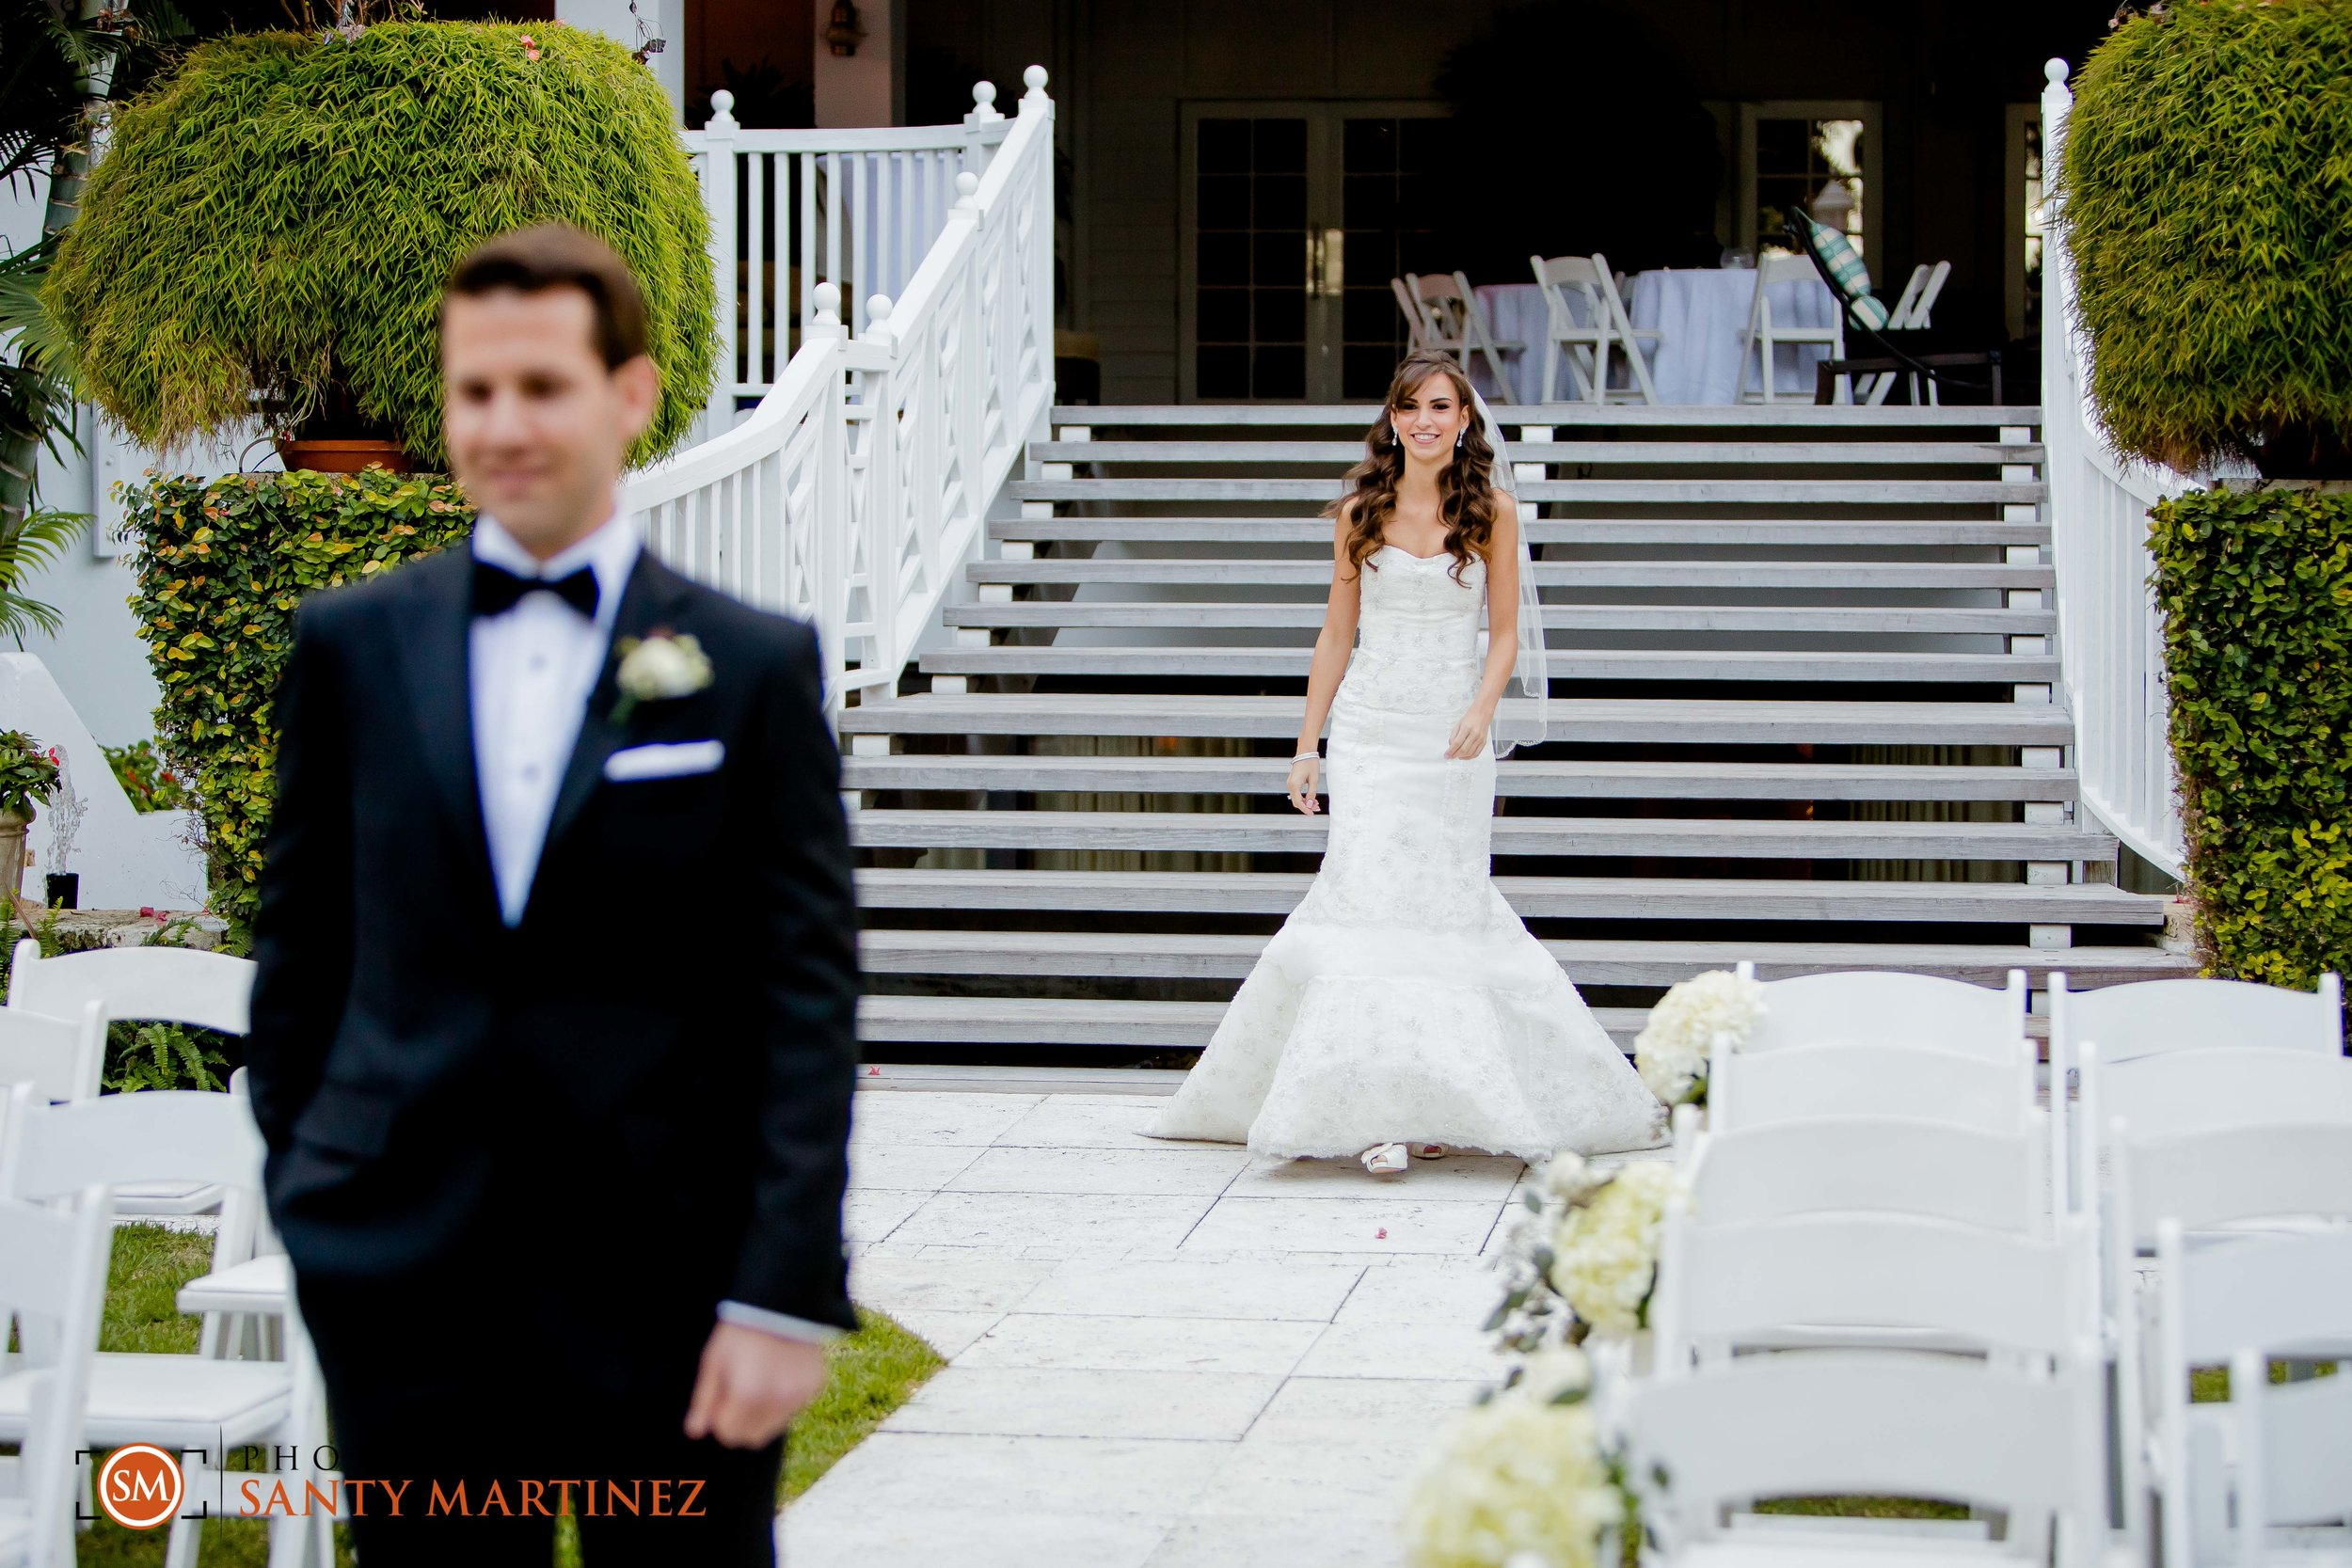 Miami Wedding Photographer - Santy Martinez -15.jpg